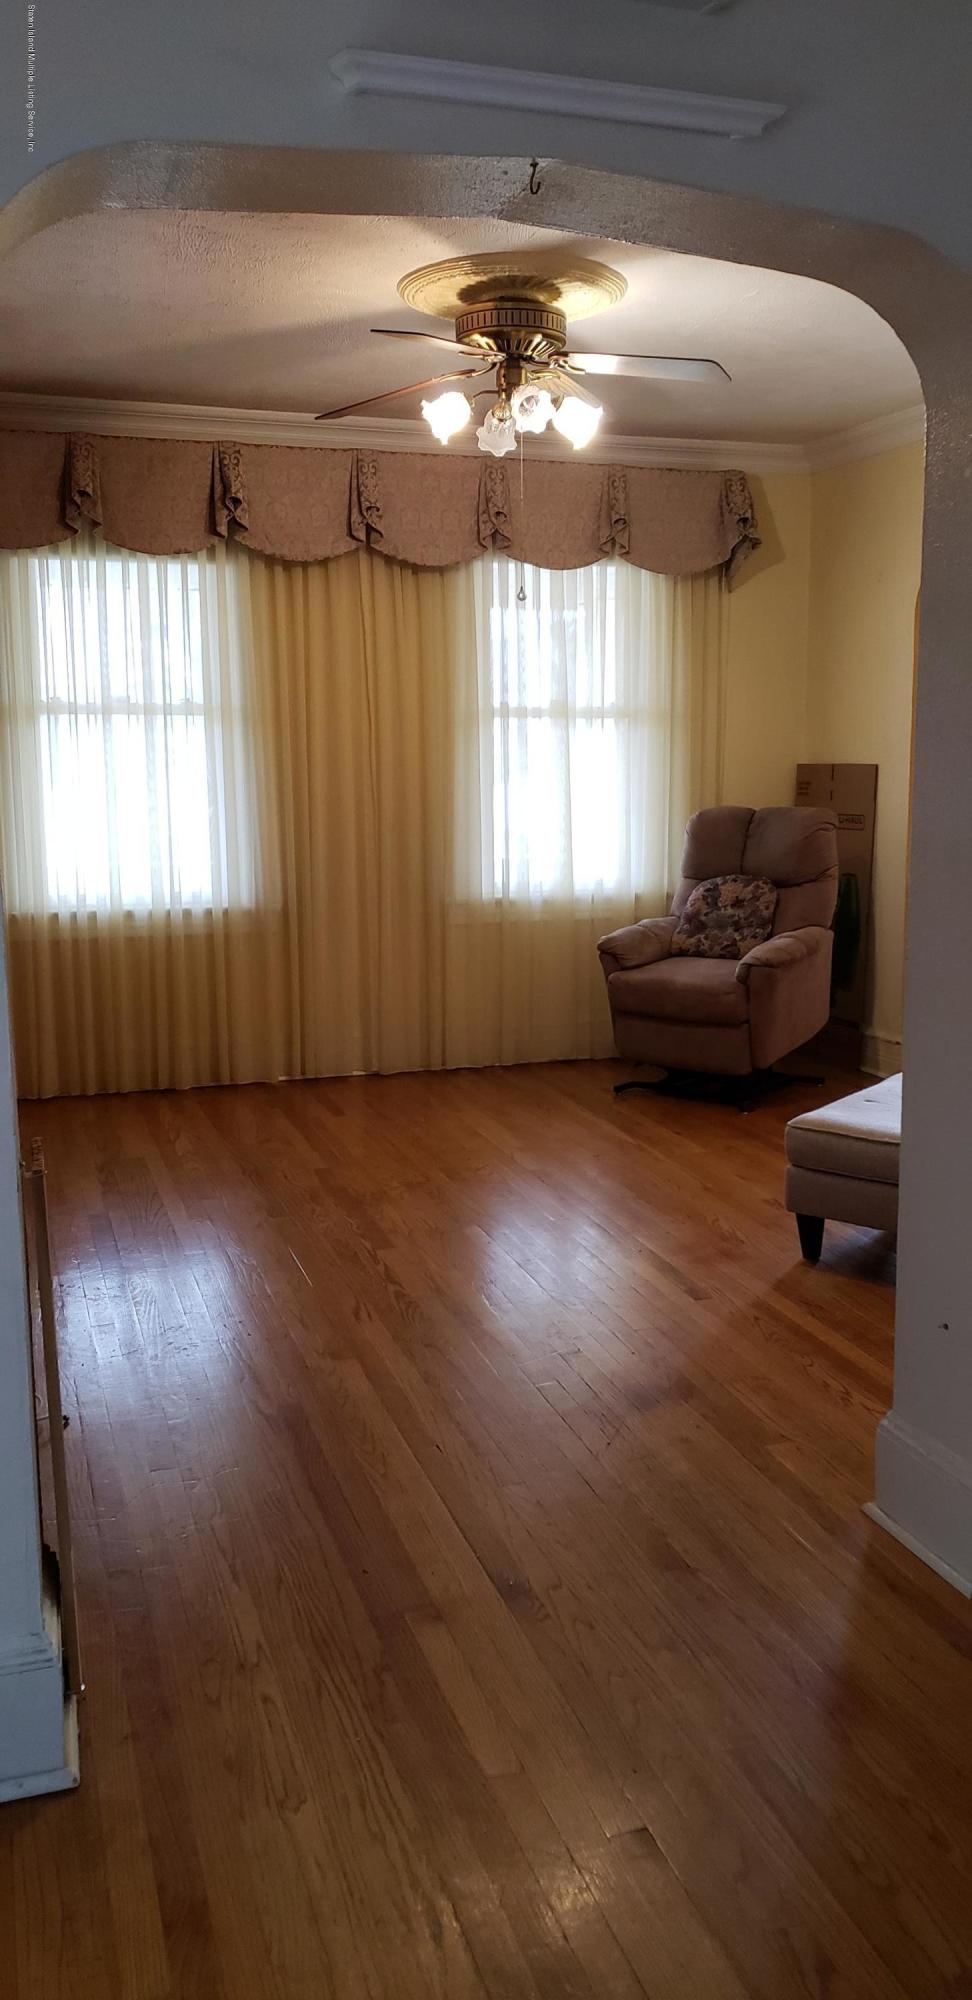 Single Family - Detached 83 Evelyn Place  Staten Island, NY 10305, MLS-1125485-5